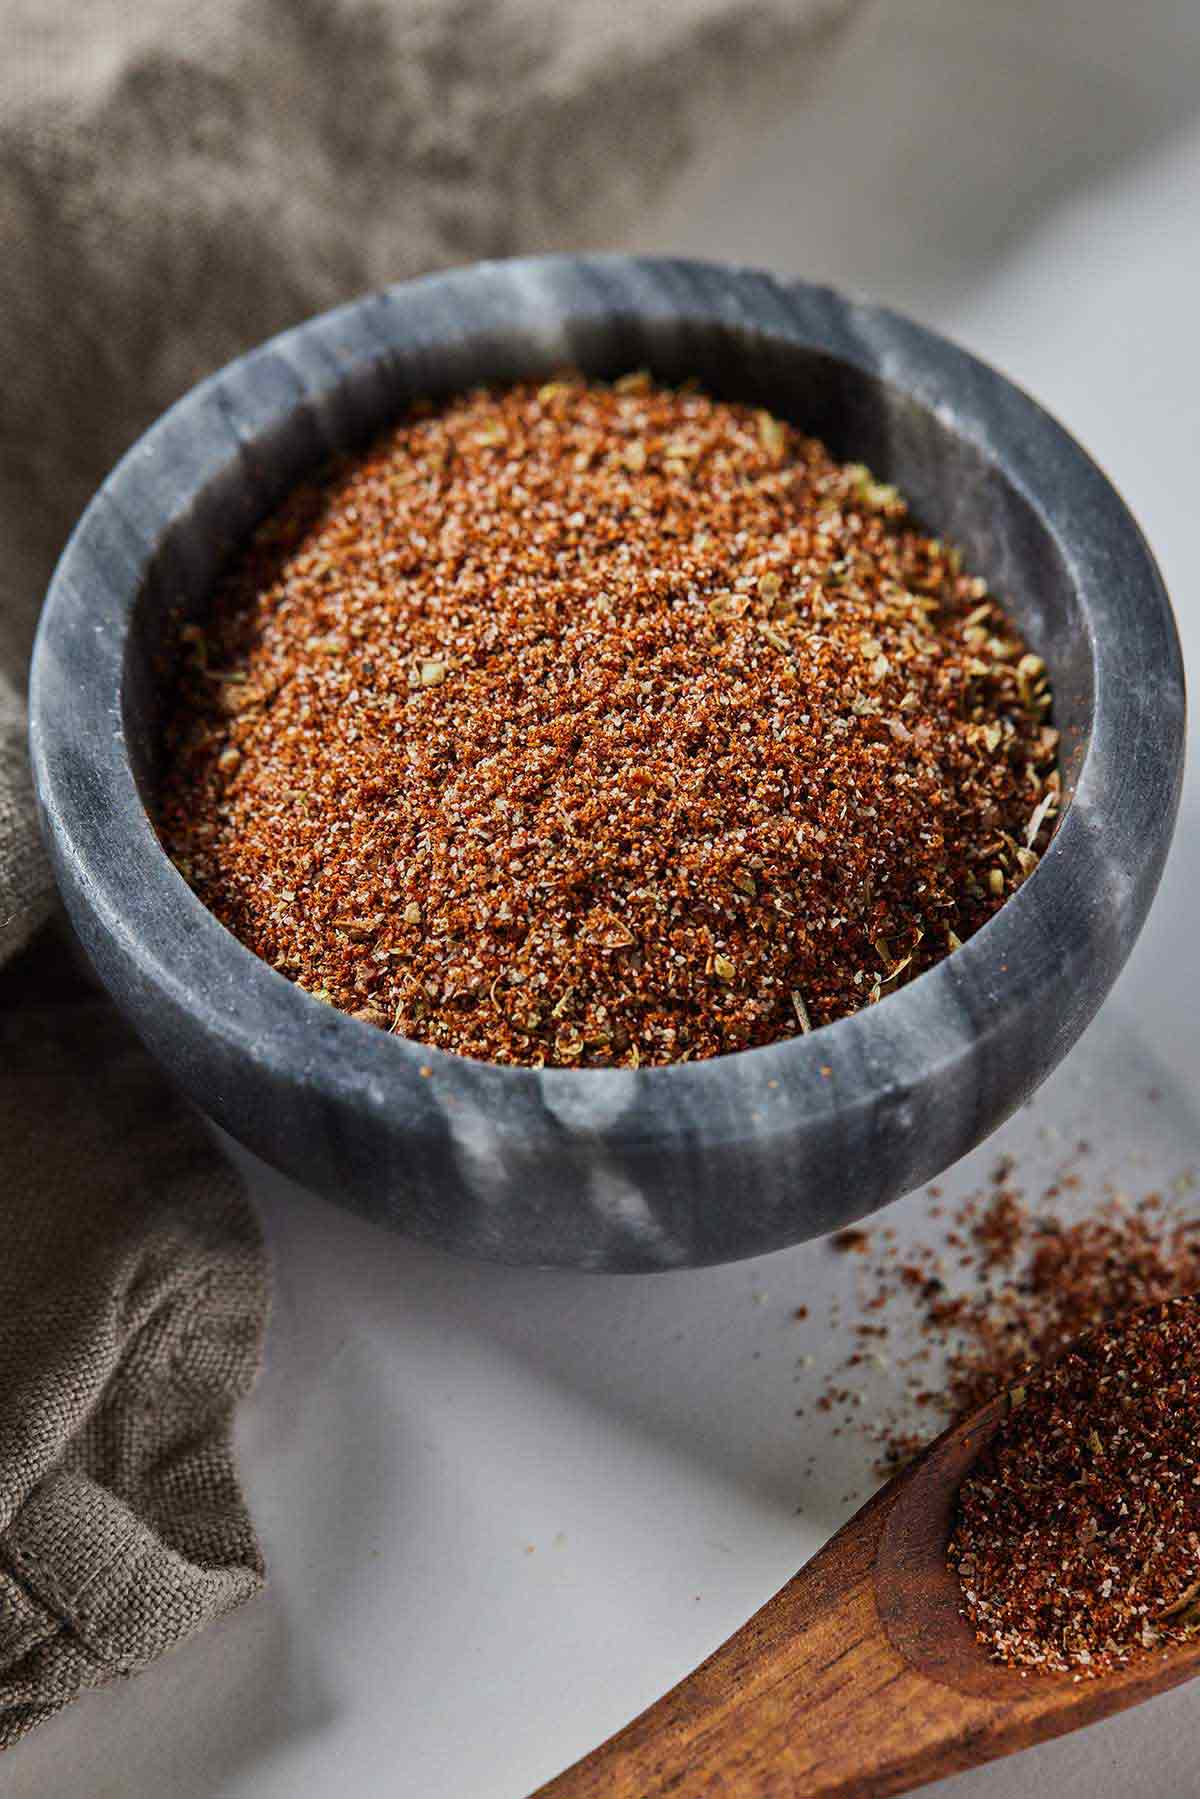 A grey pinch bowl of taco seasoning with a wooden spoon containing some beside it.